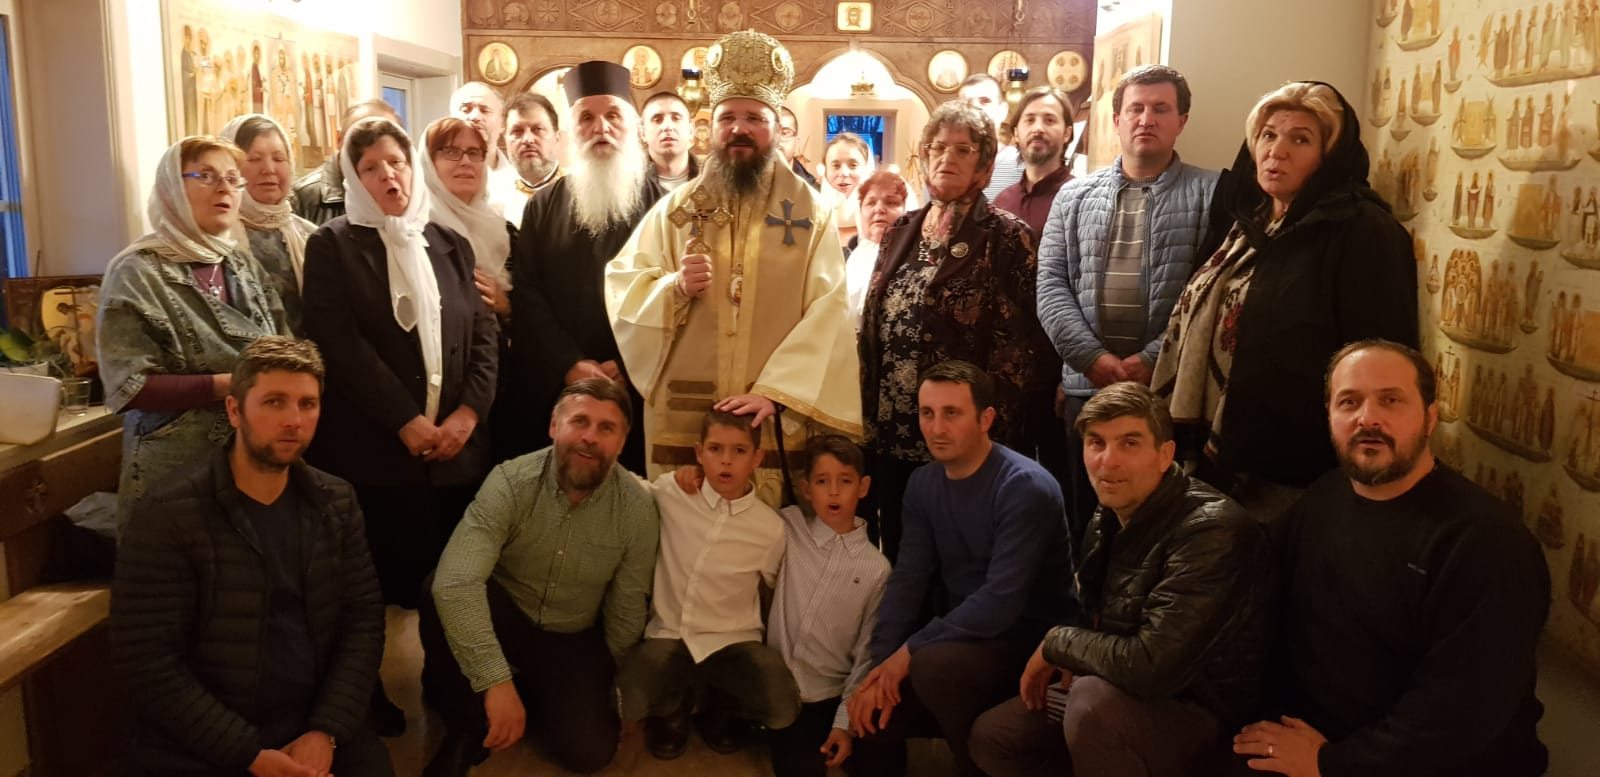 Father Damaskinos of the Grigoriou Monastery in Mount Athos visiting the Romanians in Sweden